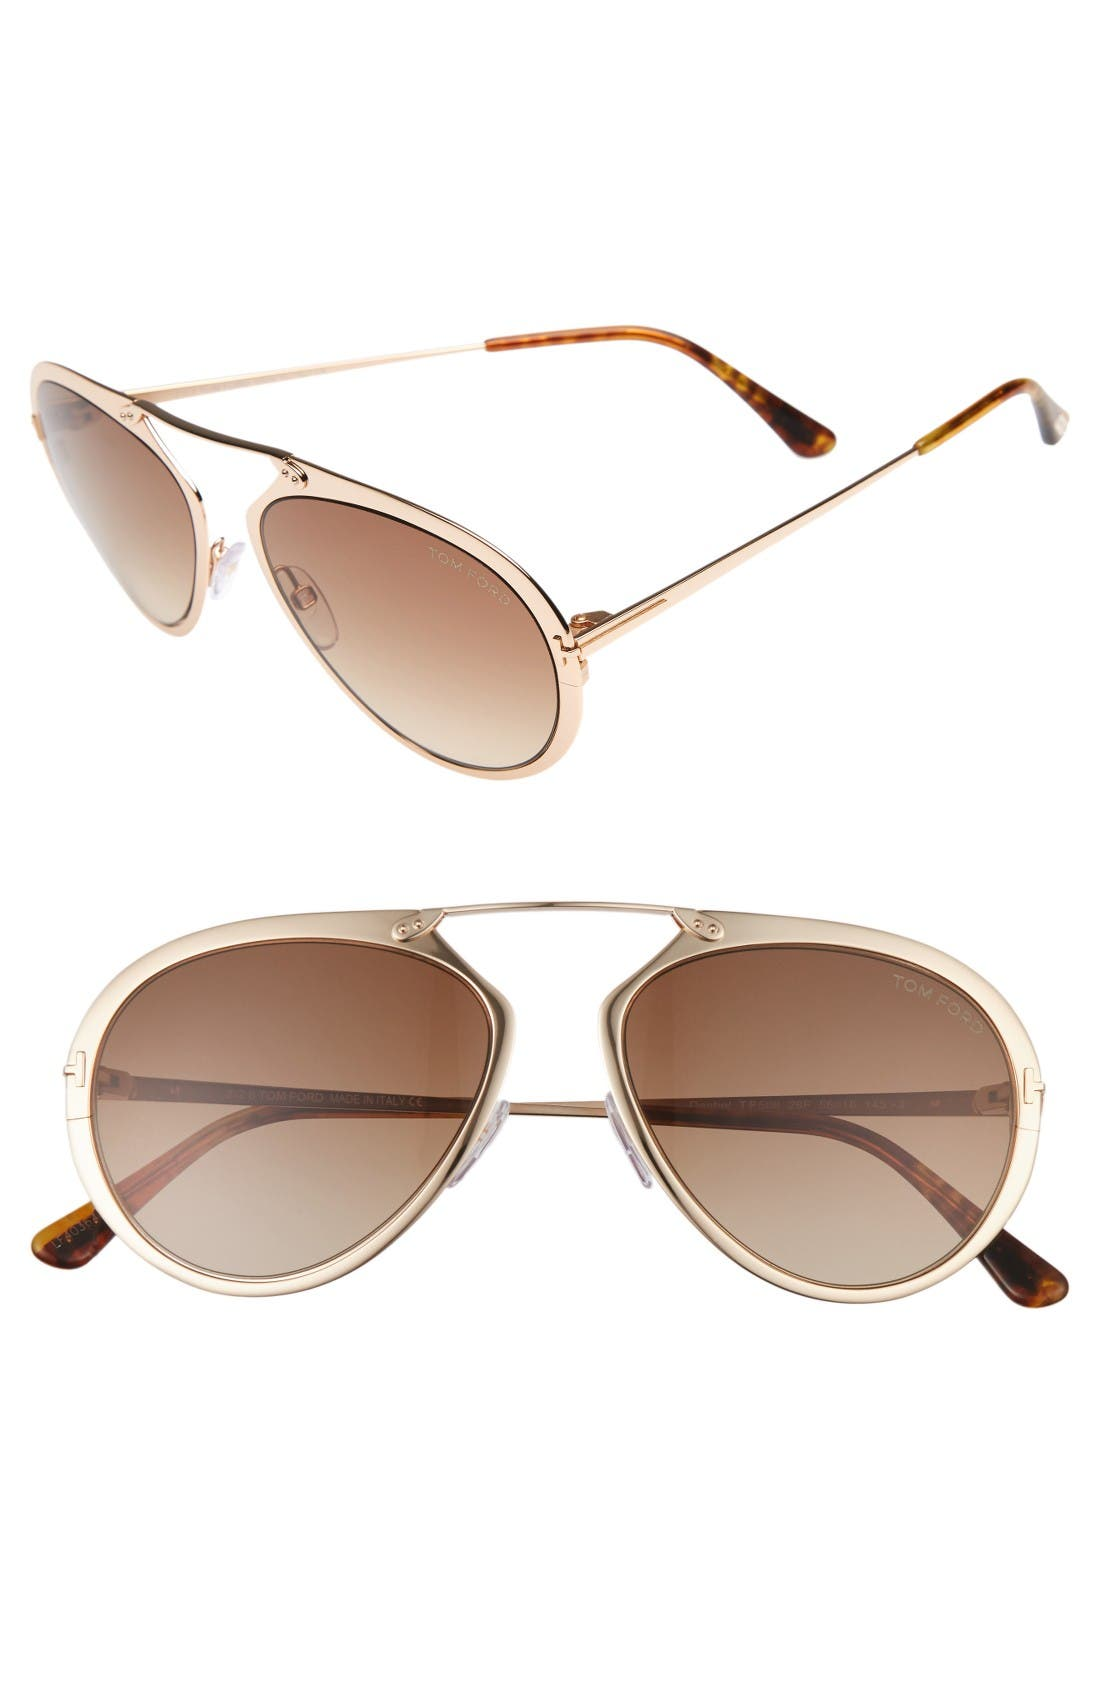 Main Image - Tom Ford Dashel 55mm Sunglasses